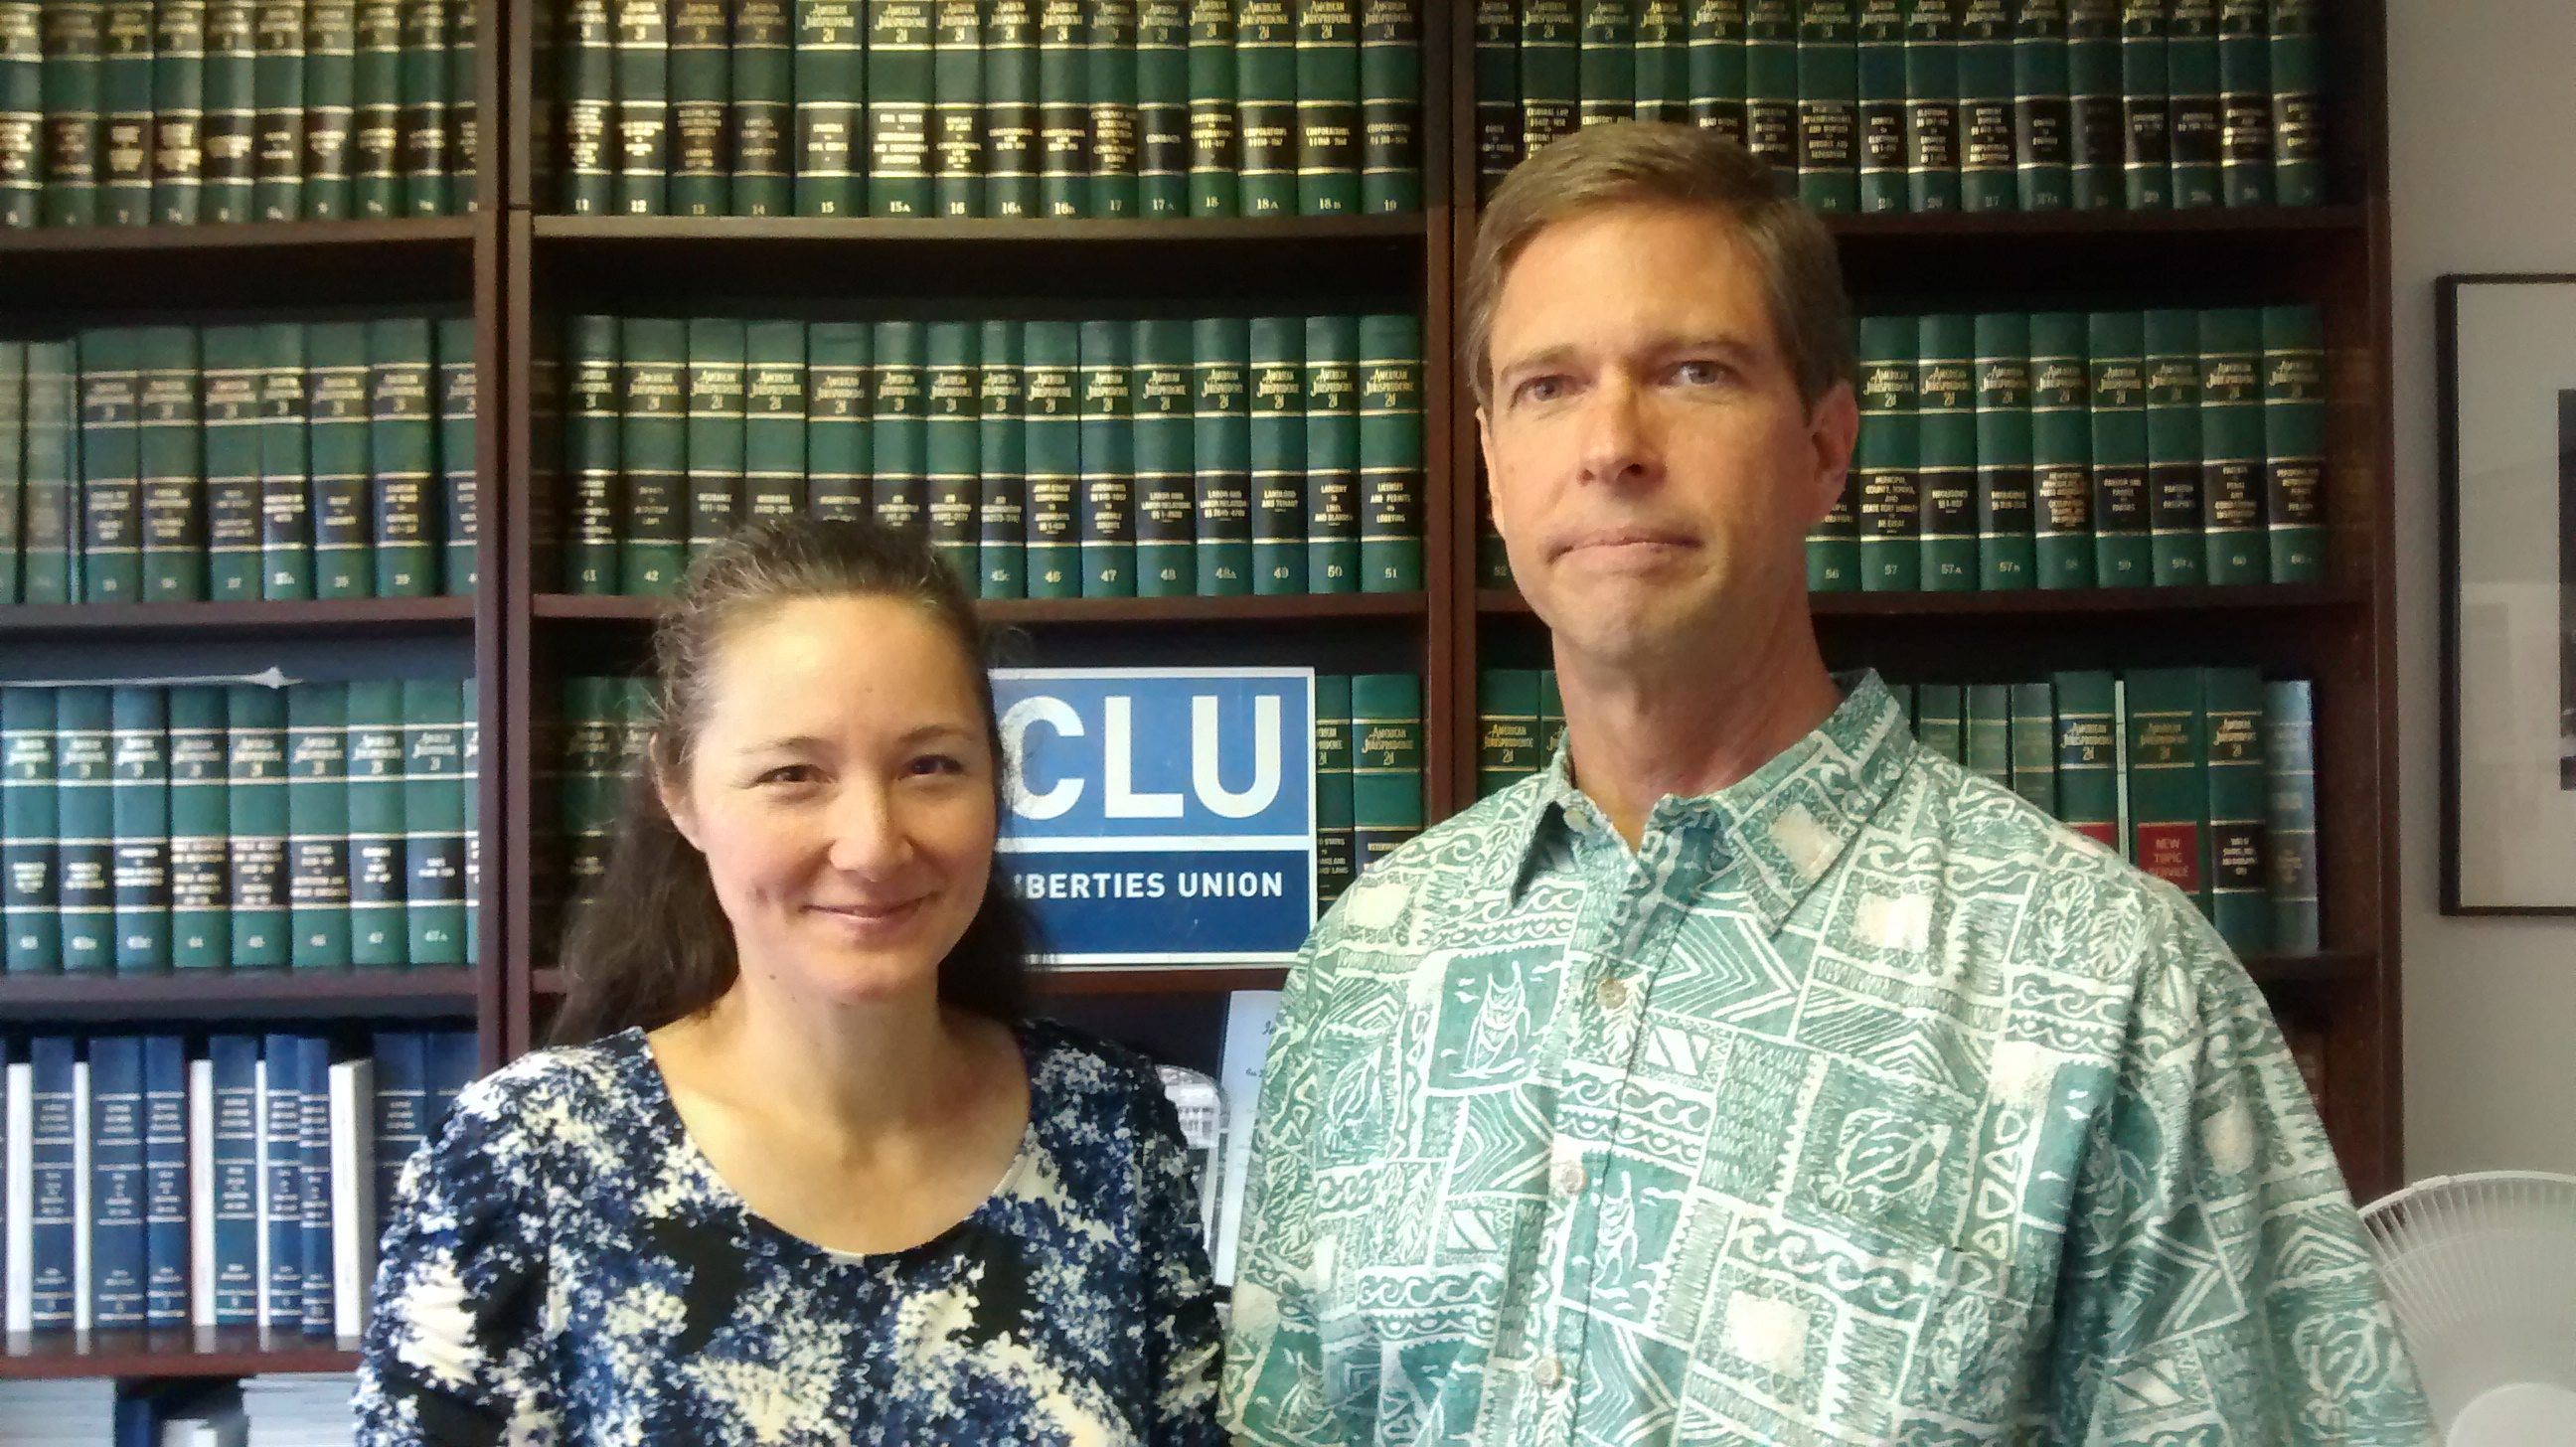 Pastor Strat Goodhue and his wife Doreen. Photo courtesy ACLU.